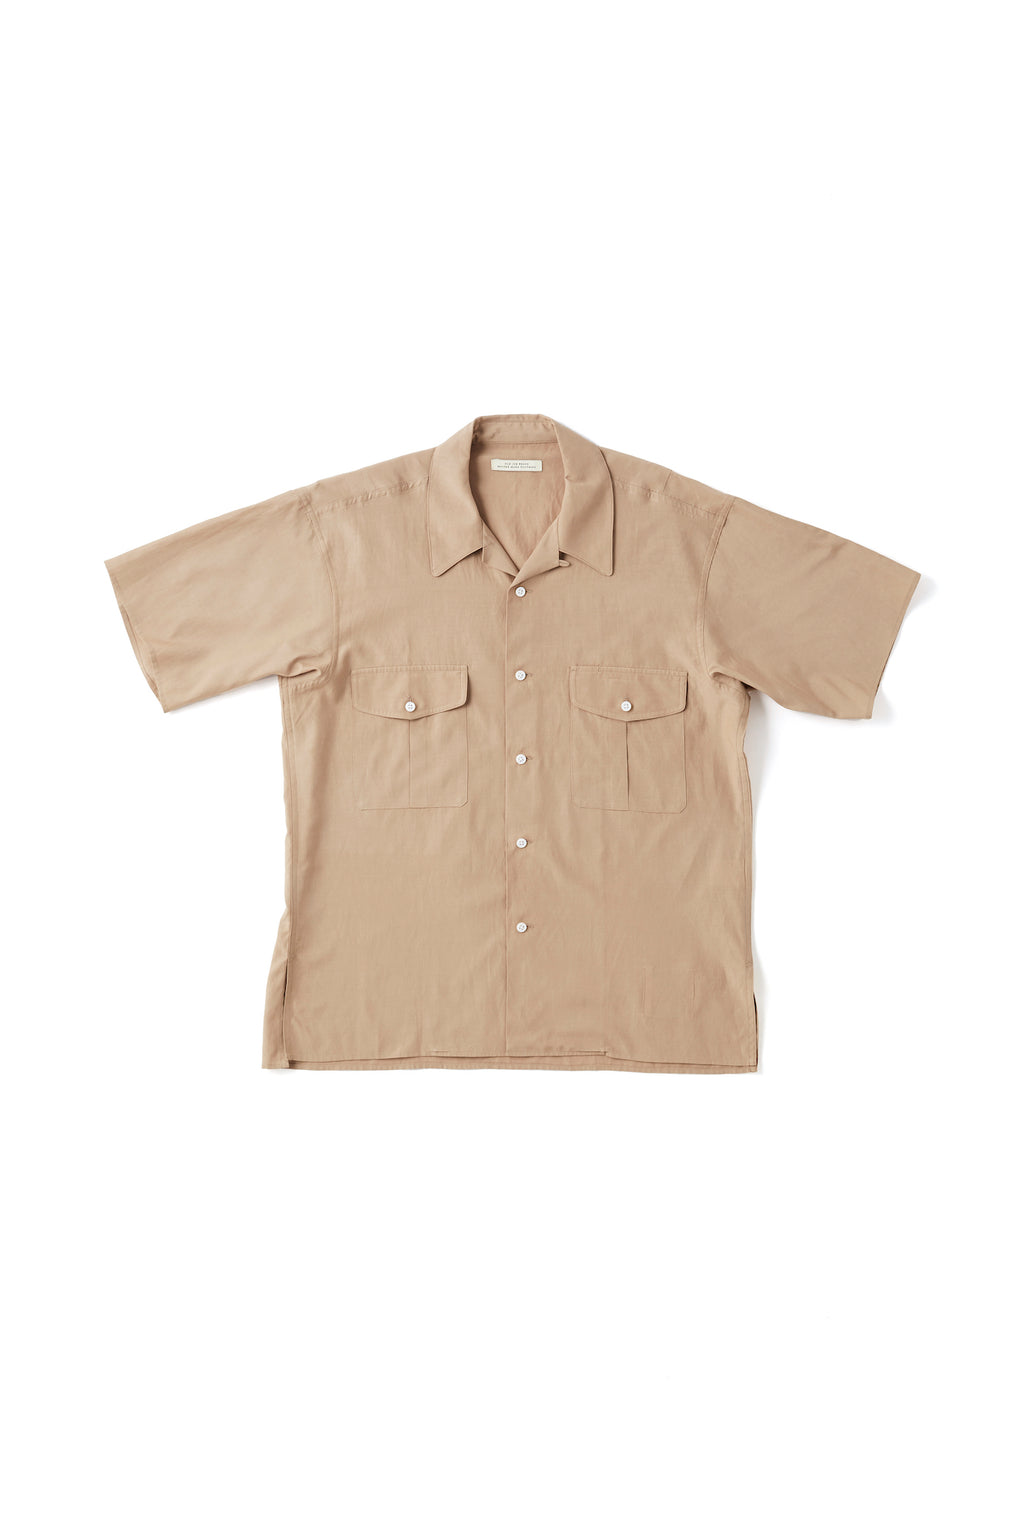 TOP NOTCH UNIFORM SHIRTS (short sleeve) - 201OJ-SH11